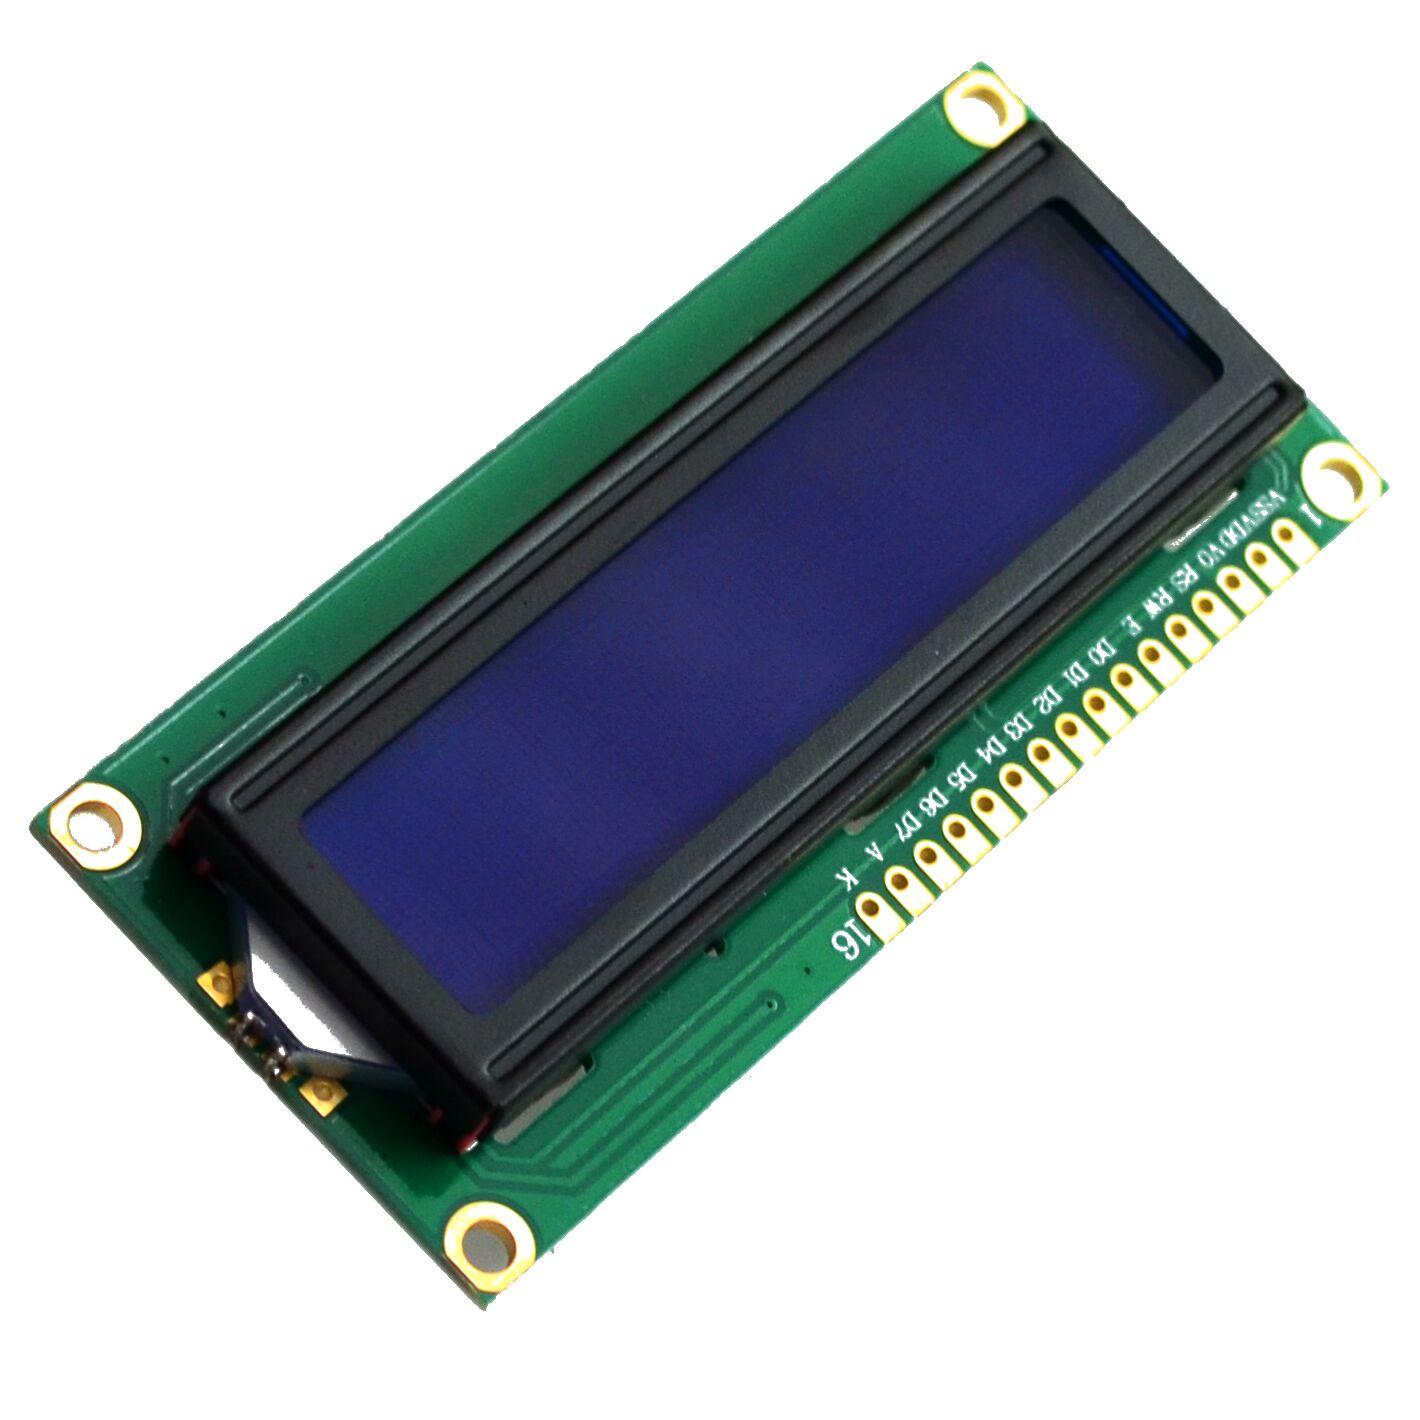 1pcs/lot LCD1602 LCD 1602 blue screen with backlight LCD display 1602A-5v(China (Mainland))